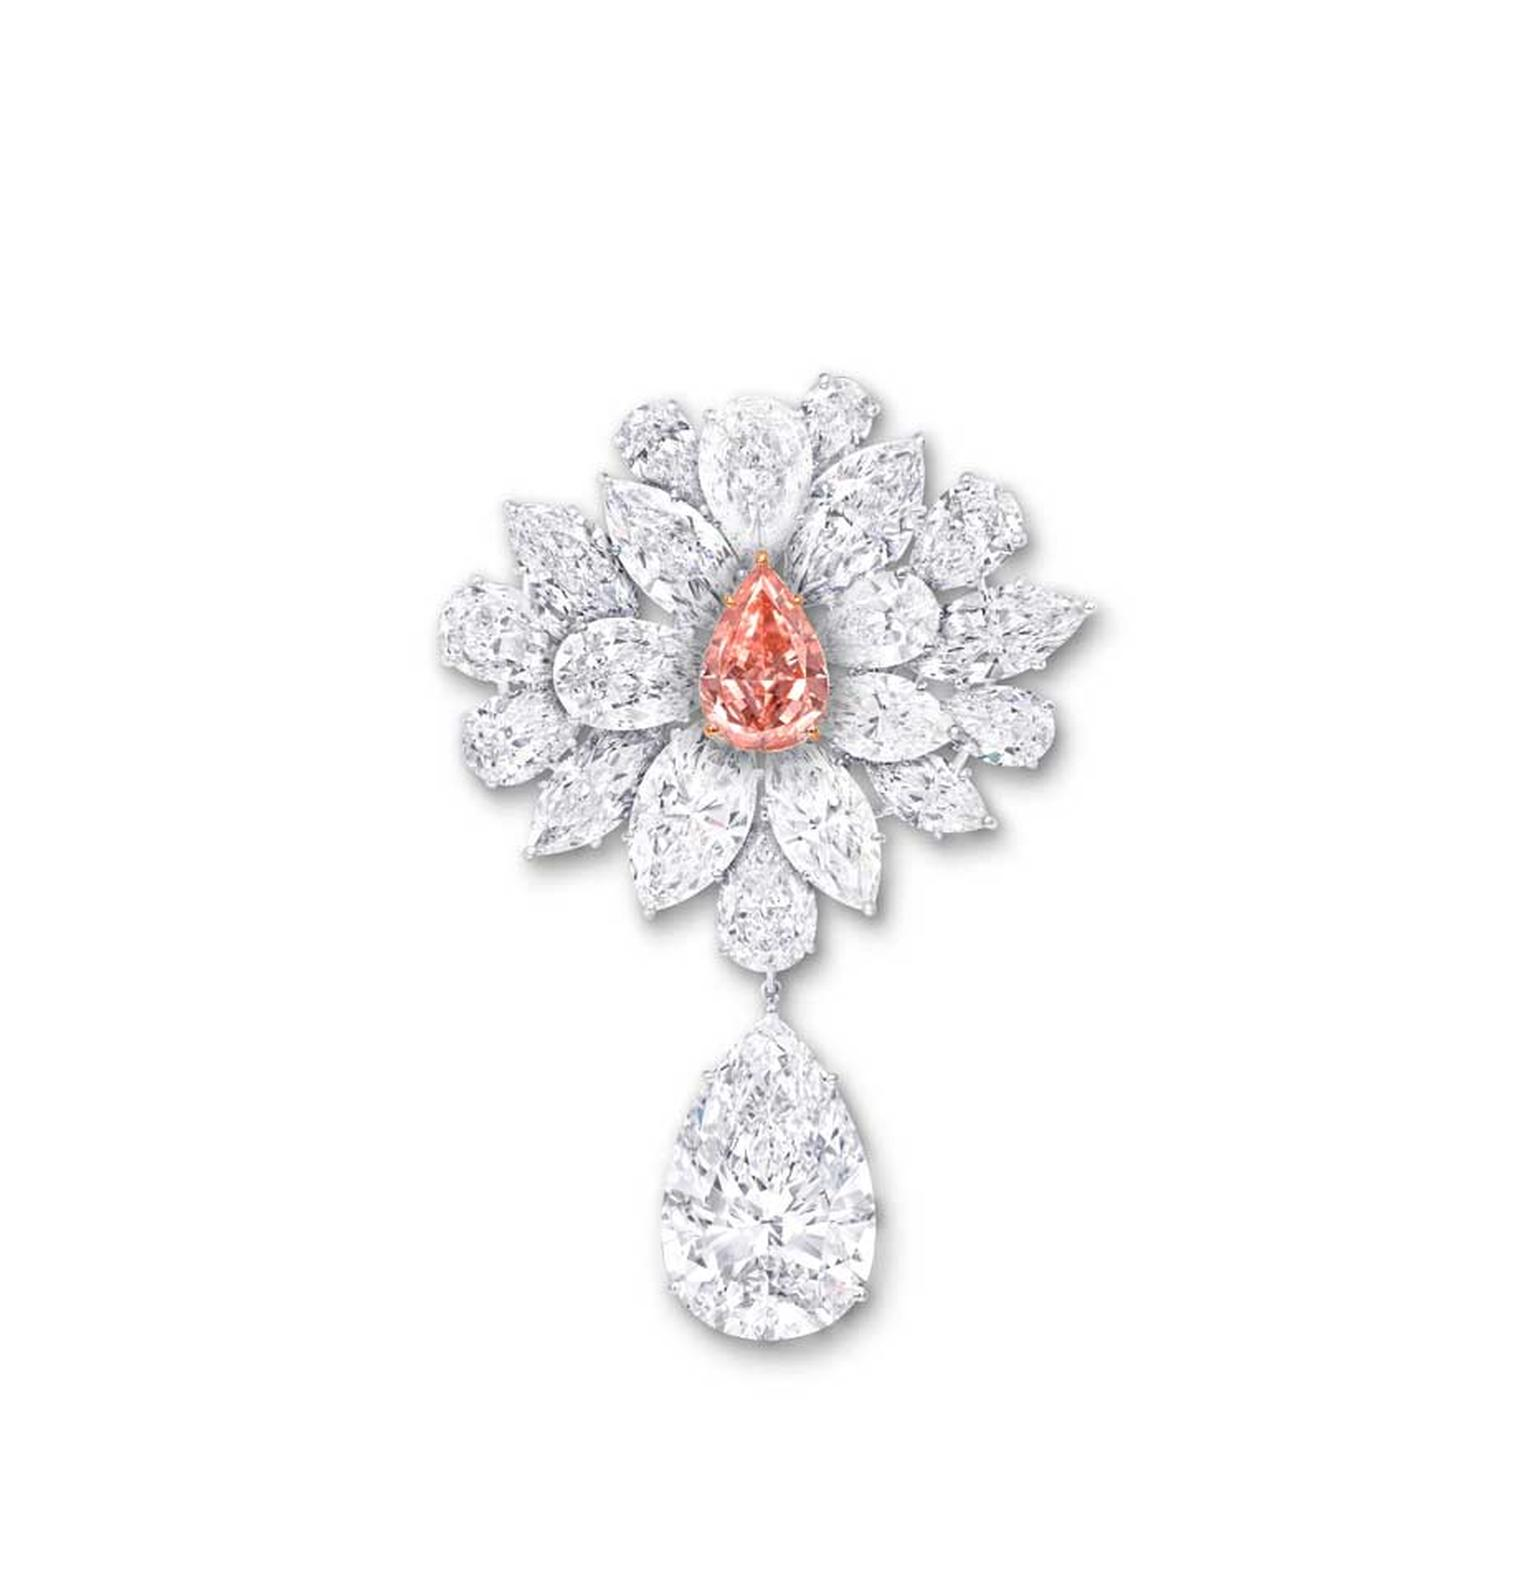 Graff's Diamond Flower Brooch, unveiled at the 2014 Biennale des Antiquaires in Paris, features an 8.97ct pear-shaped Fancy Vivid Pink Orange diamond, surrounded by a spray of white diamond petals and leaves.